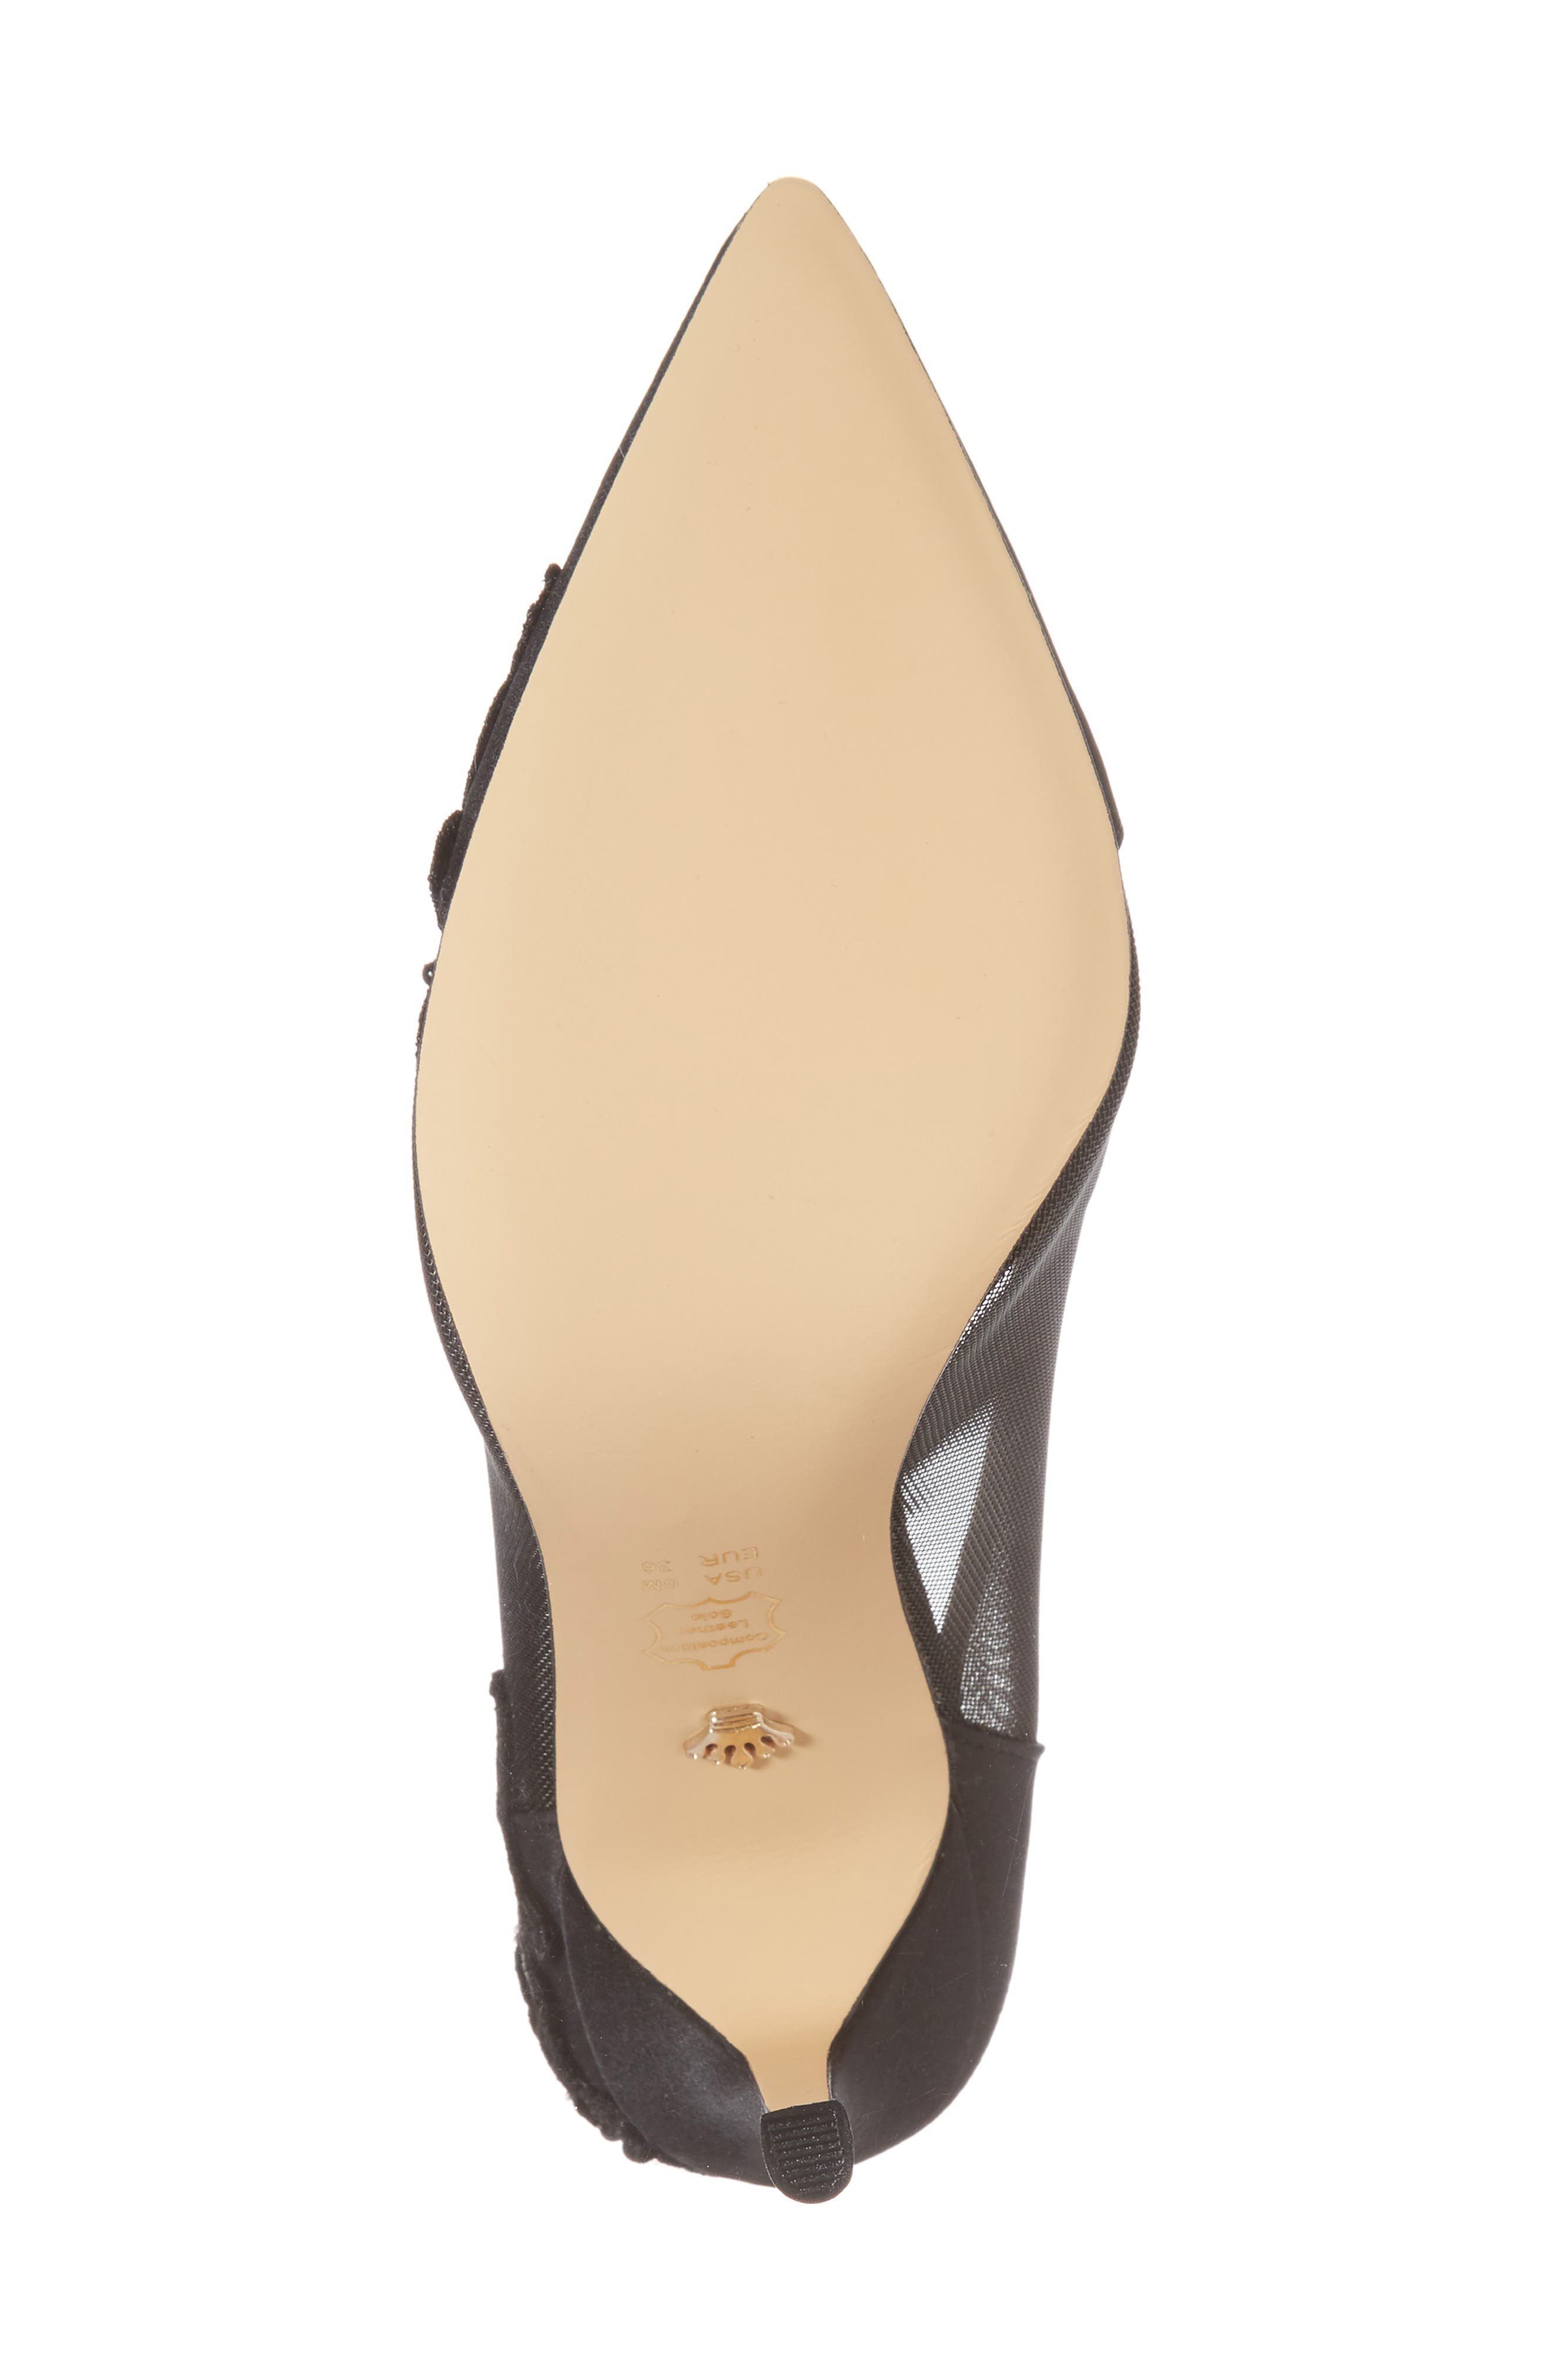 Donela Pump,                             Alternate thumbnail 6, color,                             Black Satin